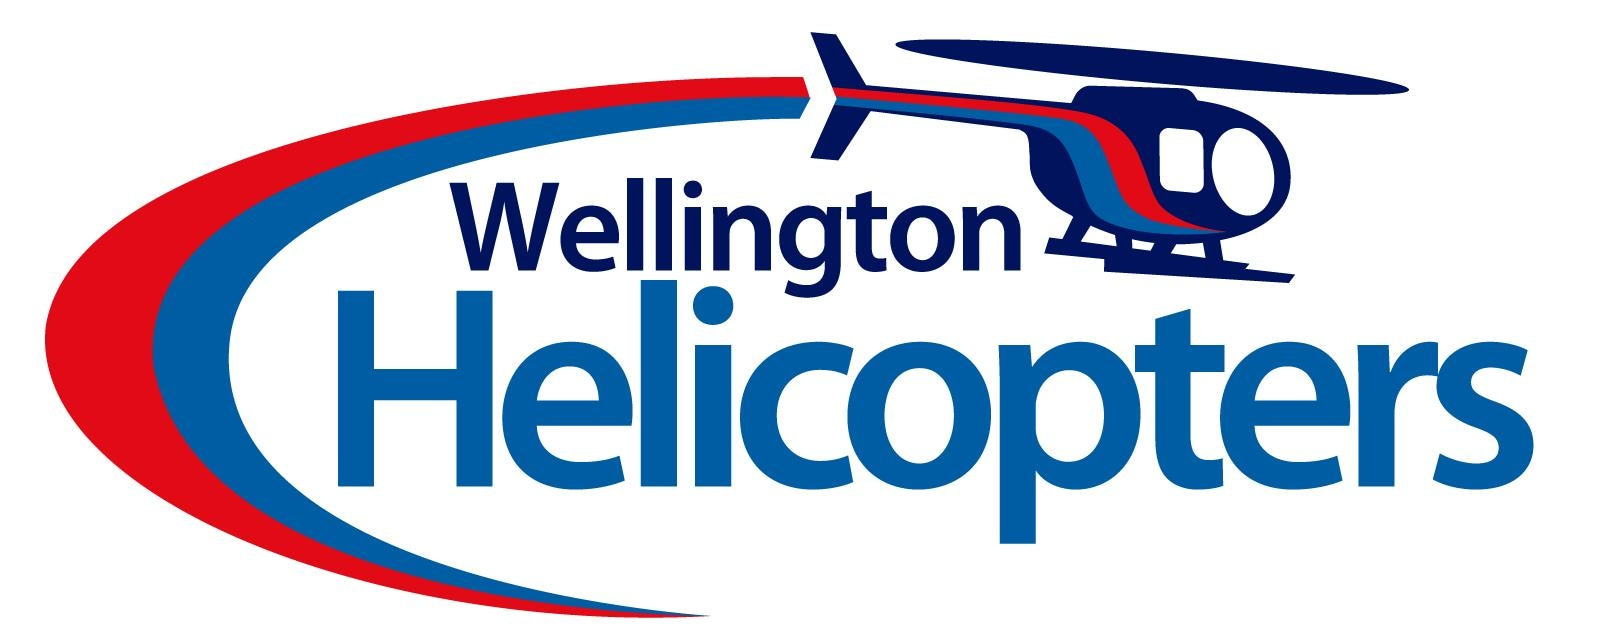 Wellington Helicopters